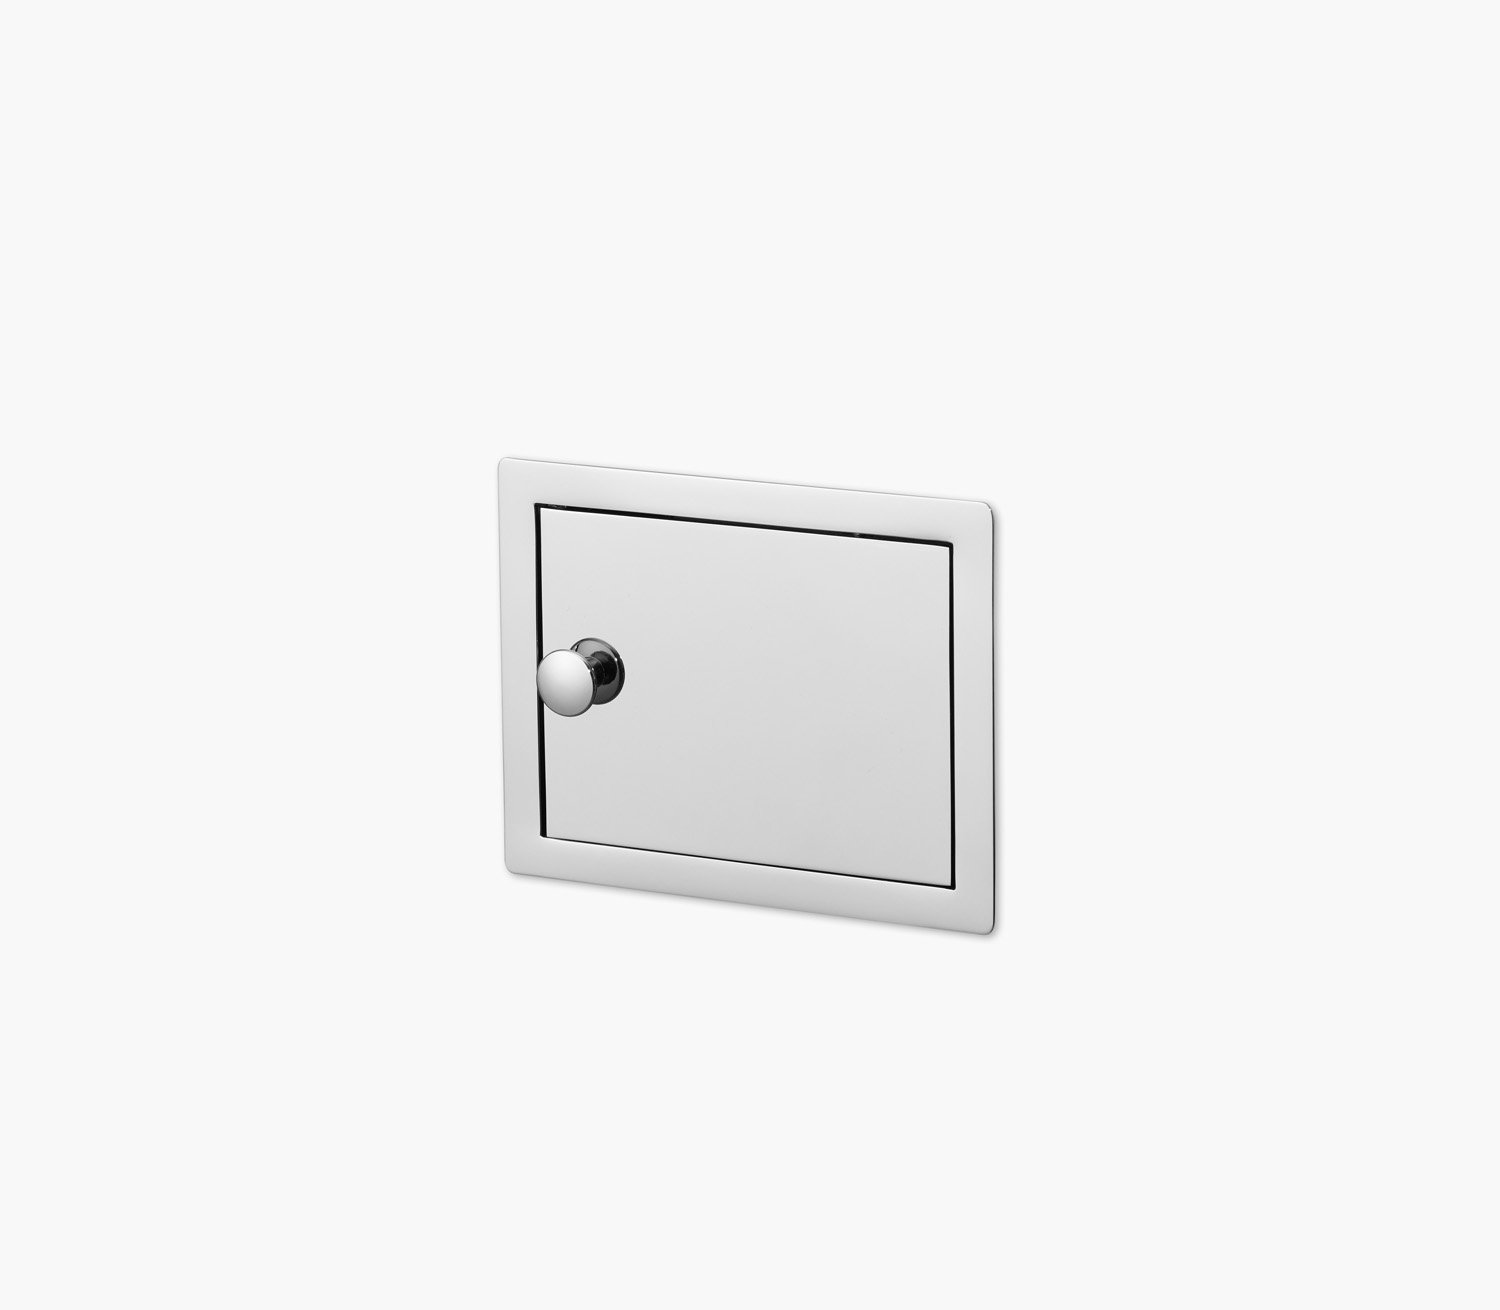 Wall Recessed Toilet Paper Holder II Left Product Image 1